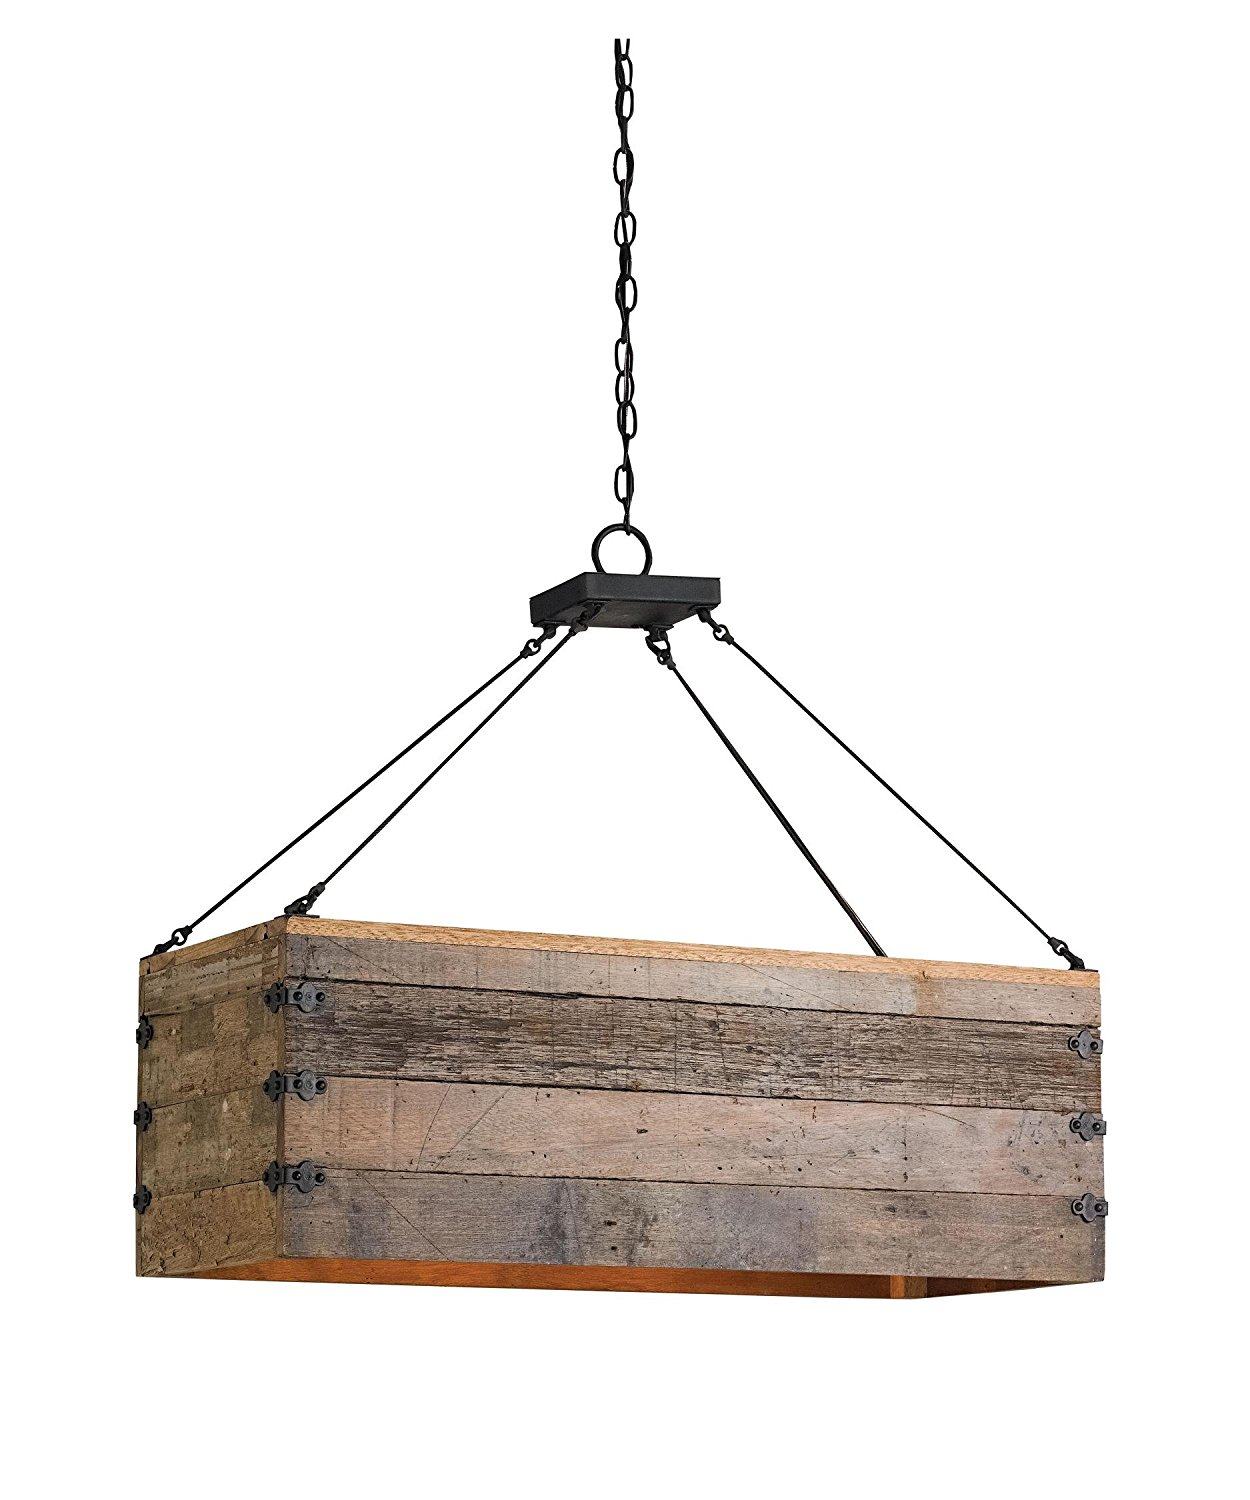 Currey and Company 9994 Billycart 3 Light Island Light in Blacksmith-Natural